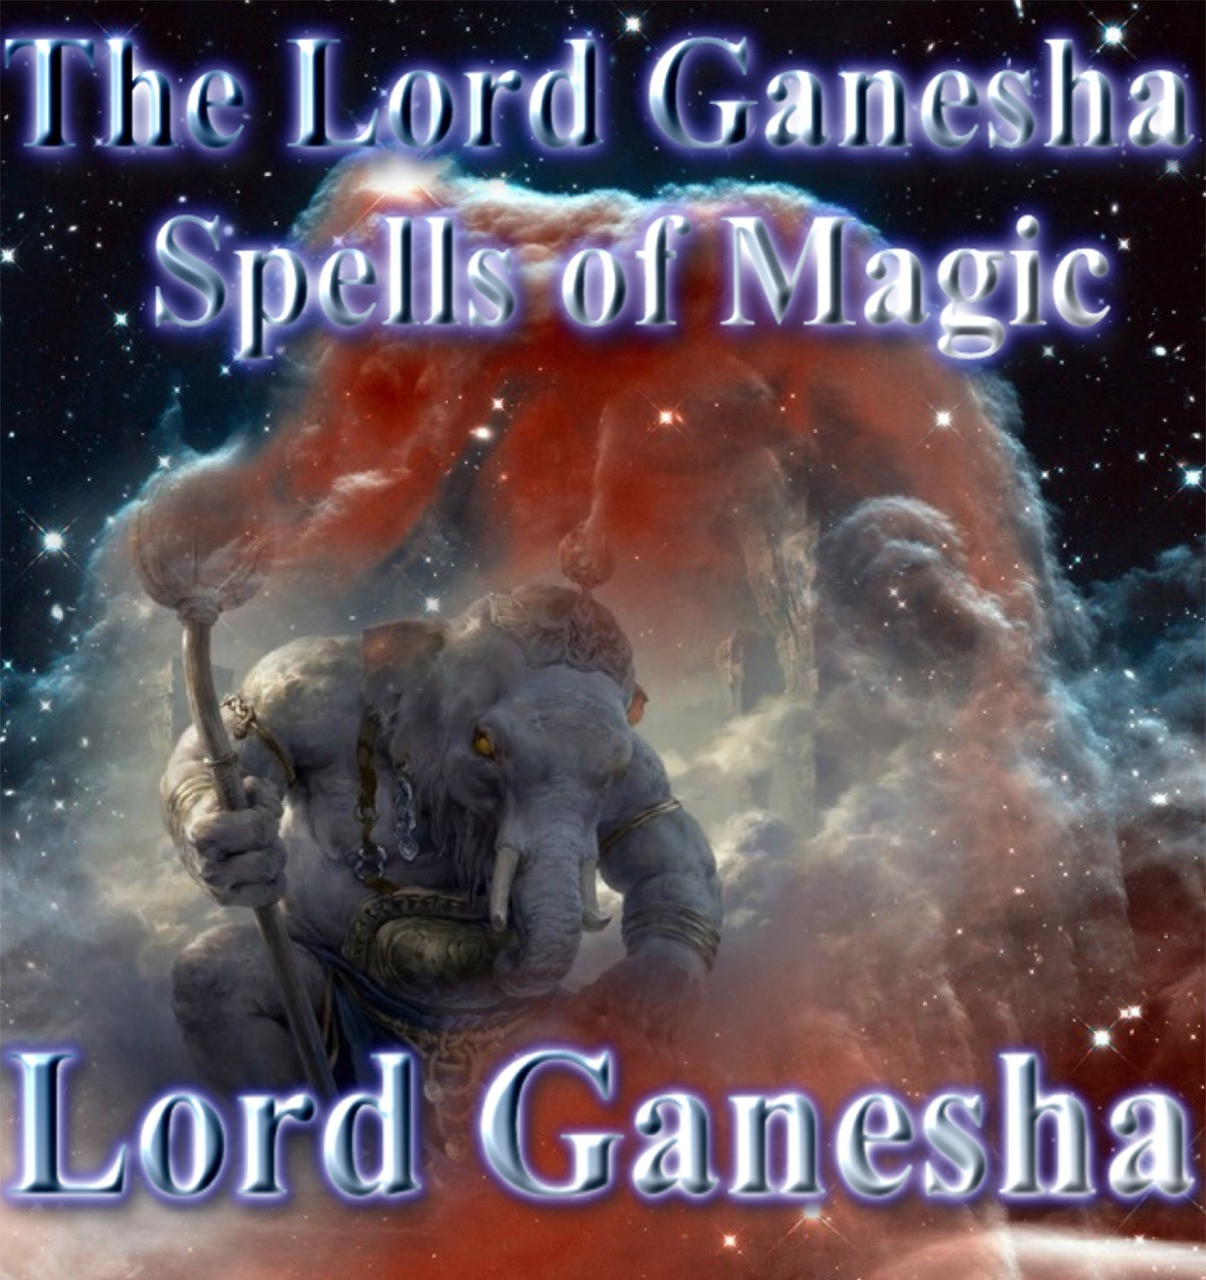 Lord Ganesha Spells Of Magic